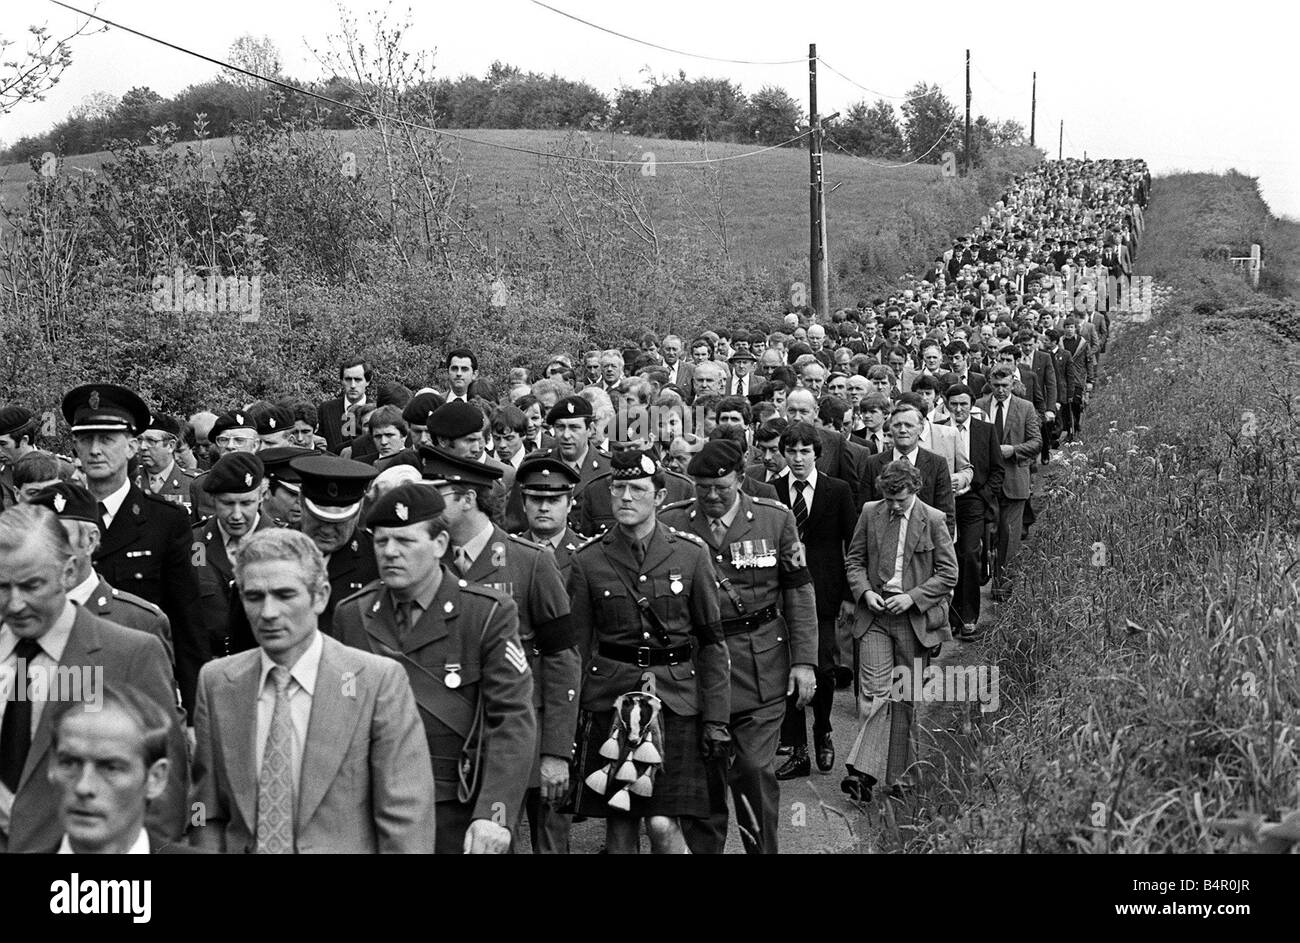 Ulster Murder Victim Thomas Alan Ritchie Funeral May 81 A section of the crowd of mourners at the funeral to First - Stock Image